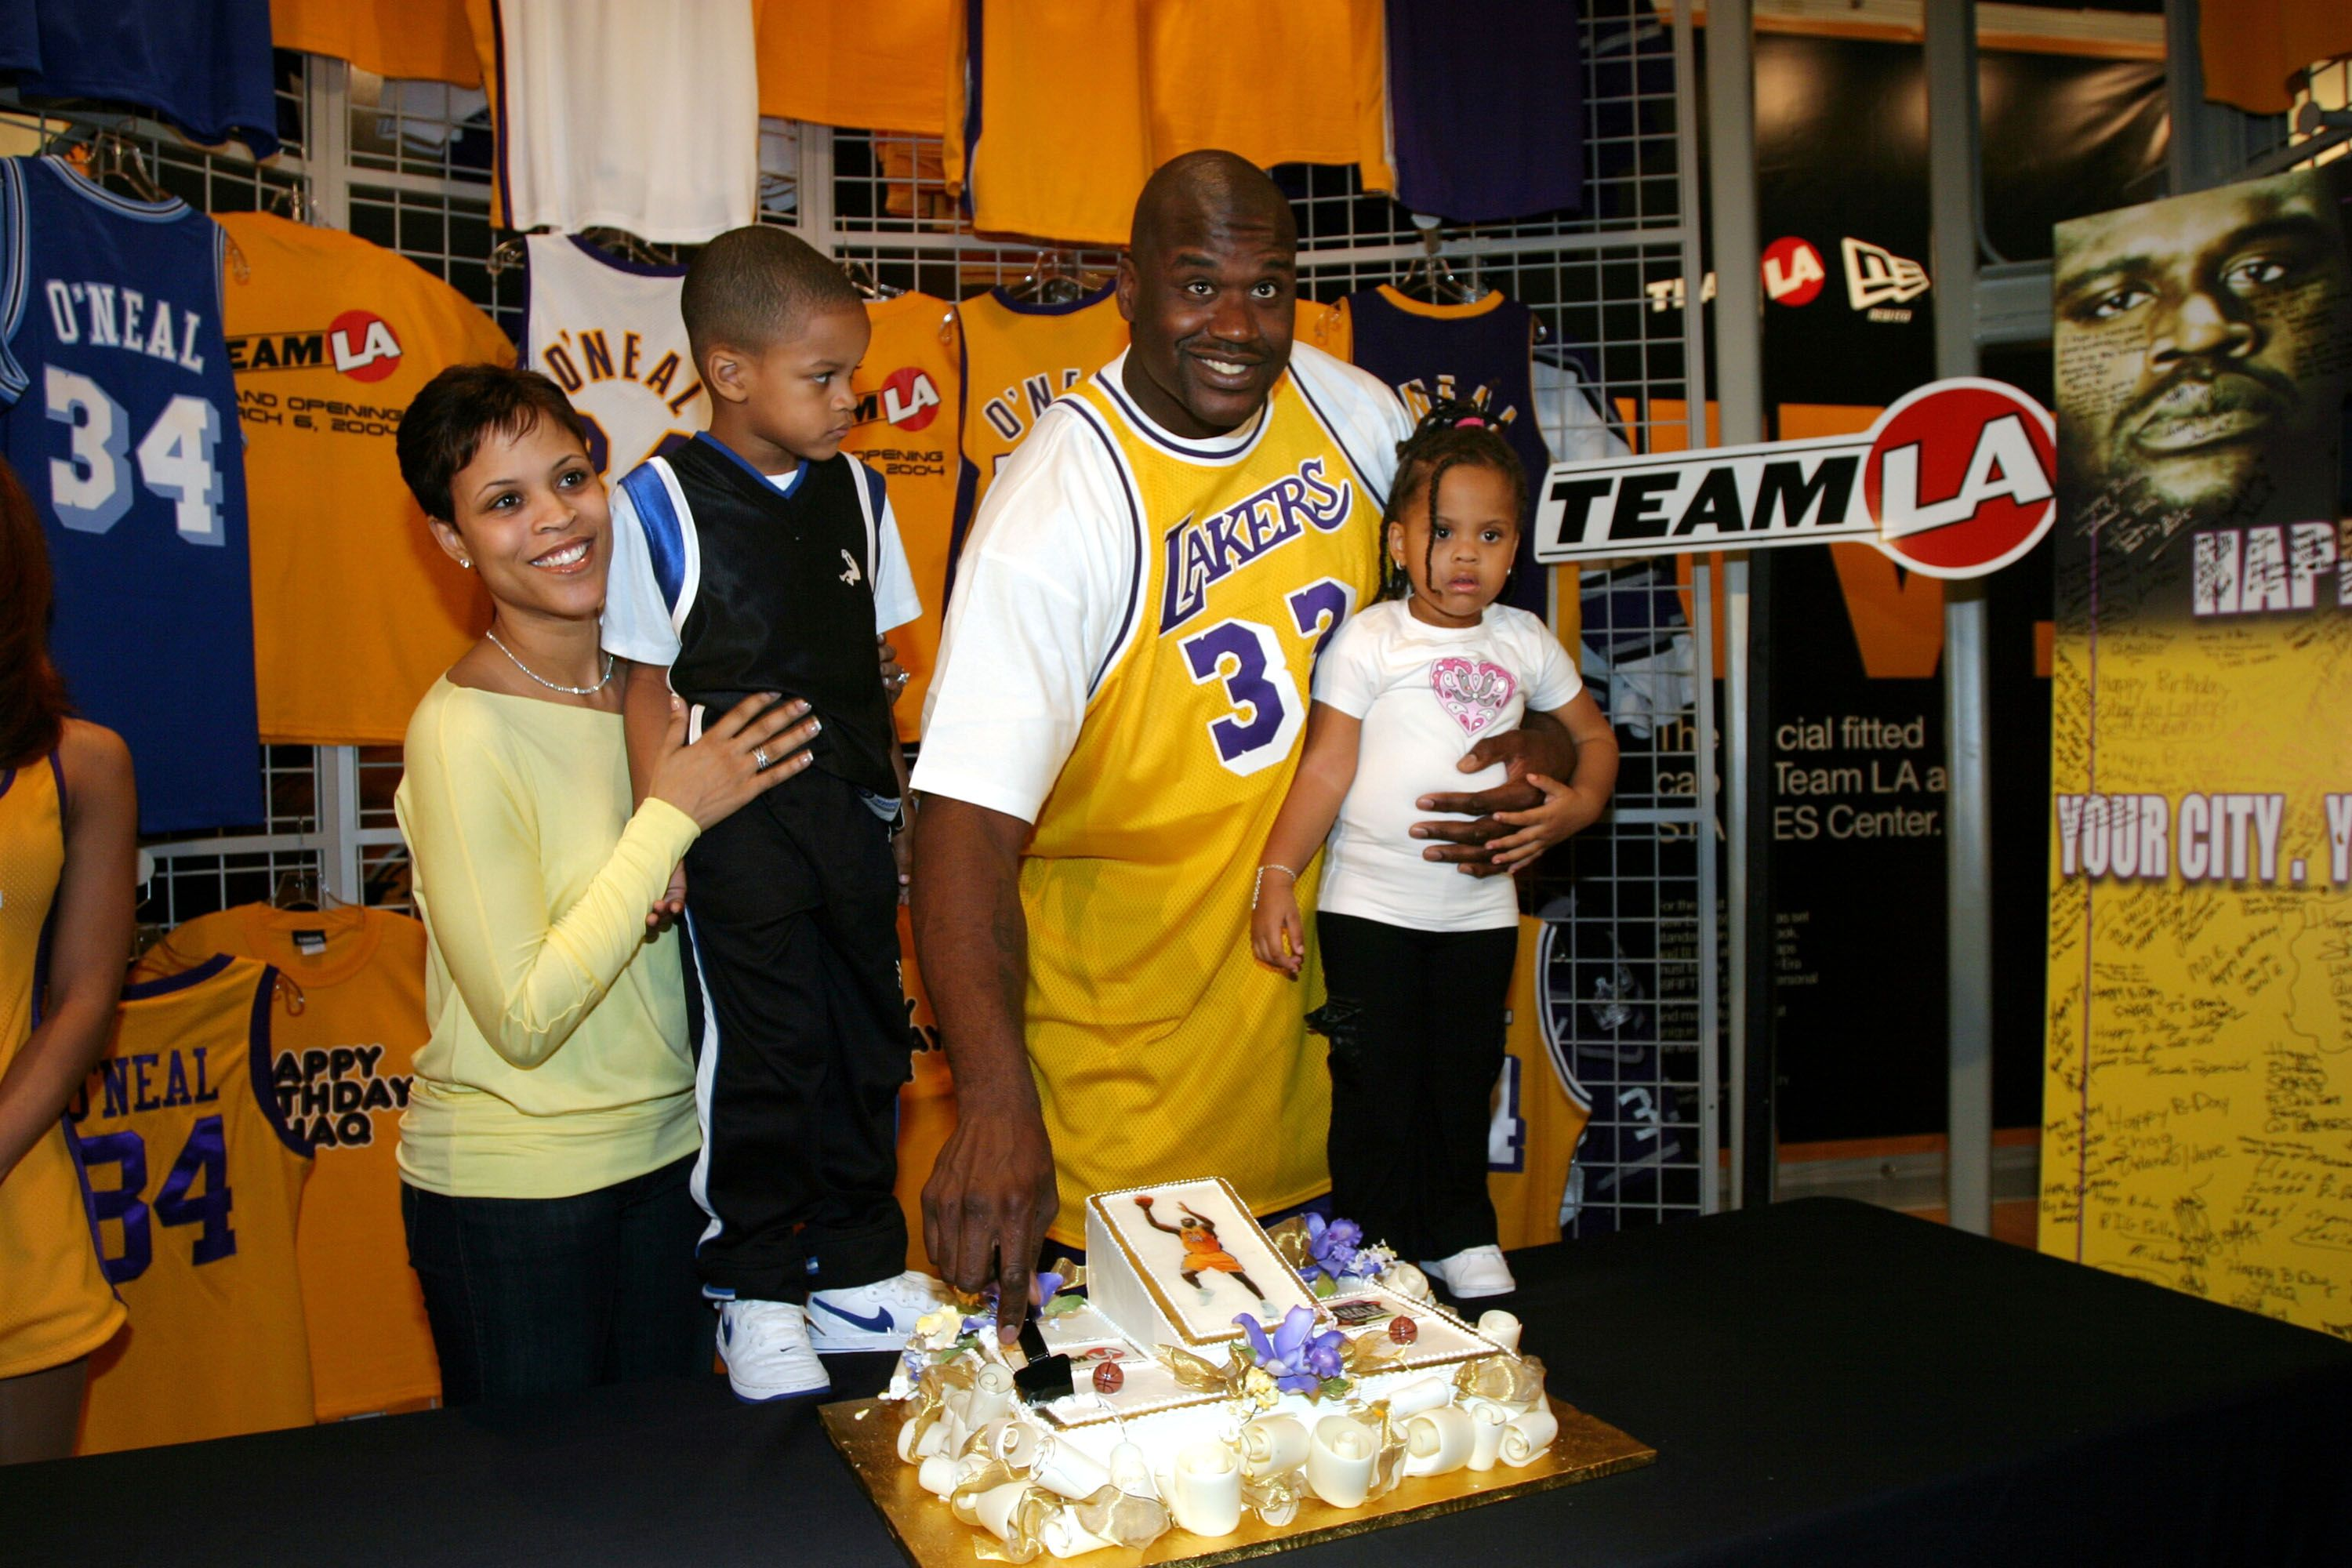 Shaquille O'Neal with ex-wife Shaunie and his children Shareef and Amirah at the opening of Team LA Store in 2004 in Los Angeles, California | Source: Getty Images